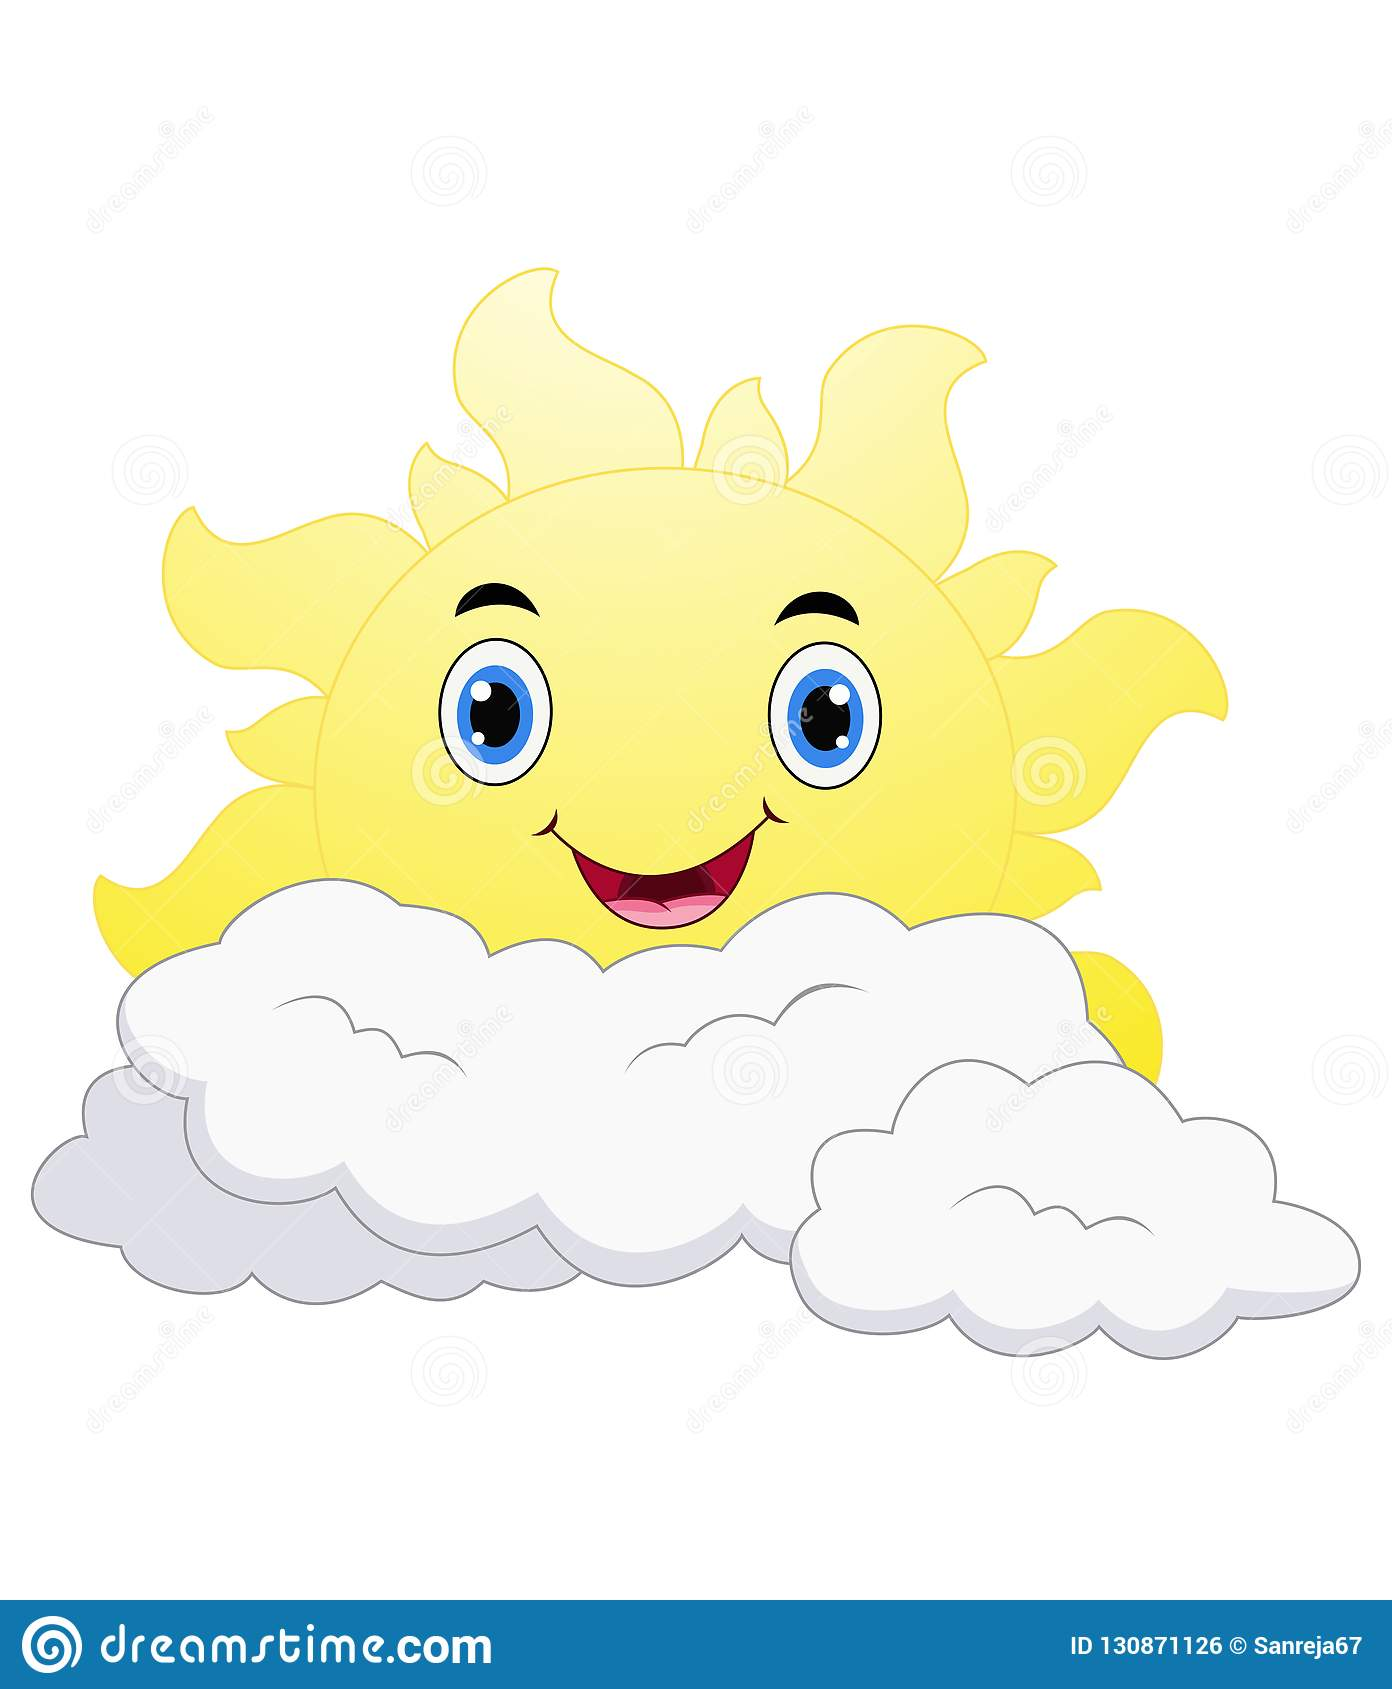 99b58744e6ad Illustration of Smiling Sun Cartoon Emoji Face Character With Happy  Expression